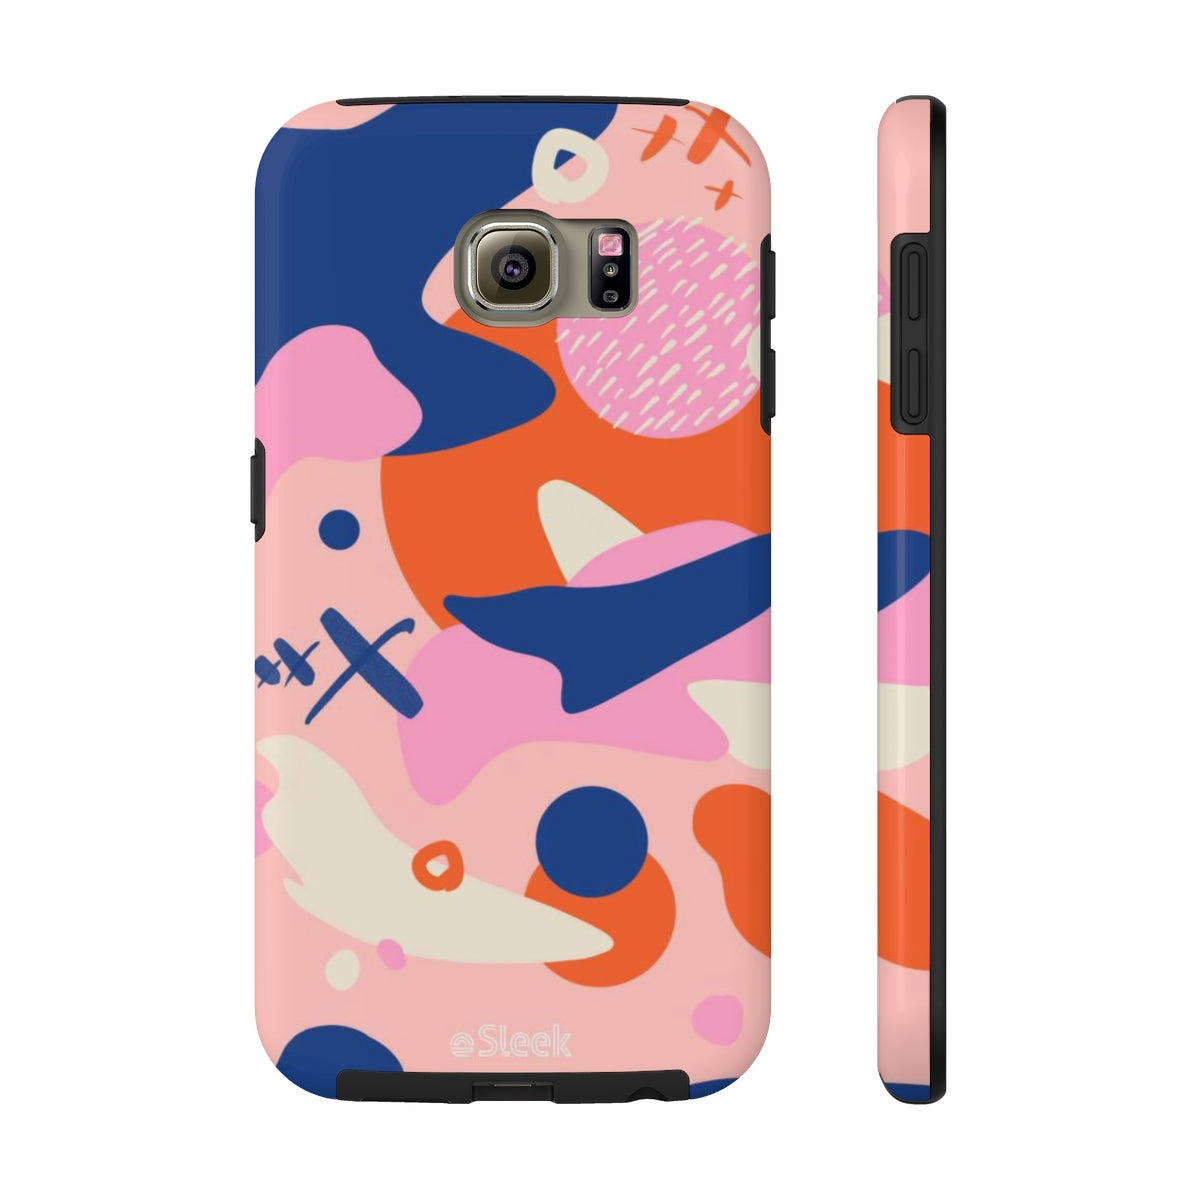 iPhone Case Tough alla Abstract